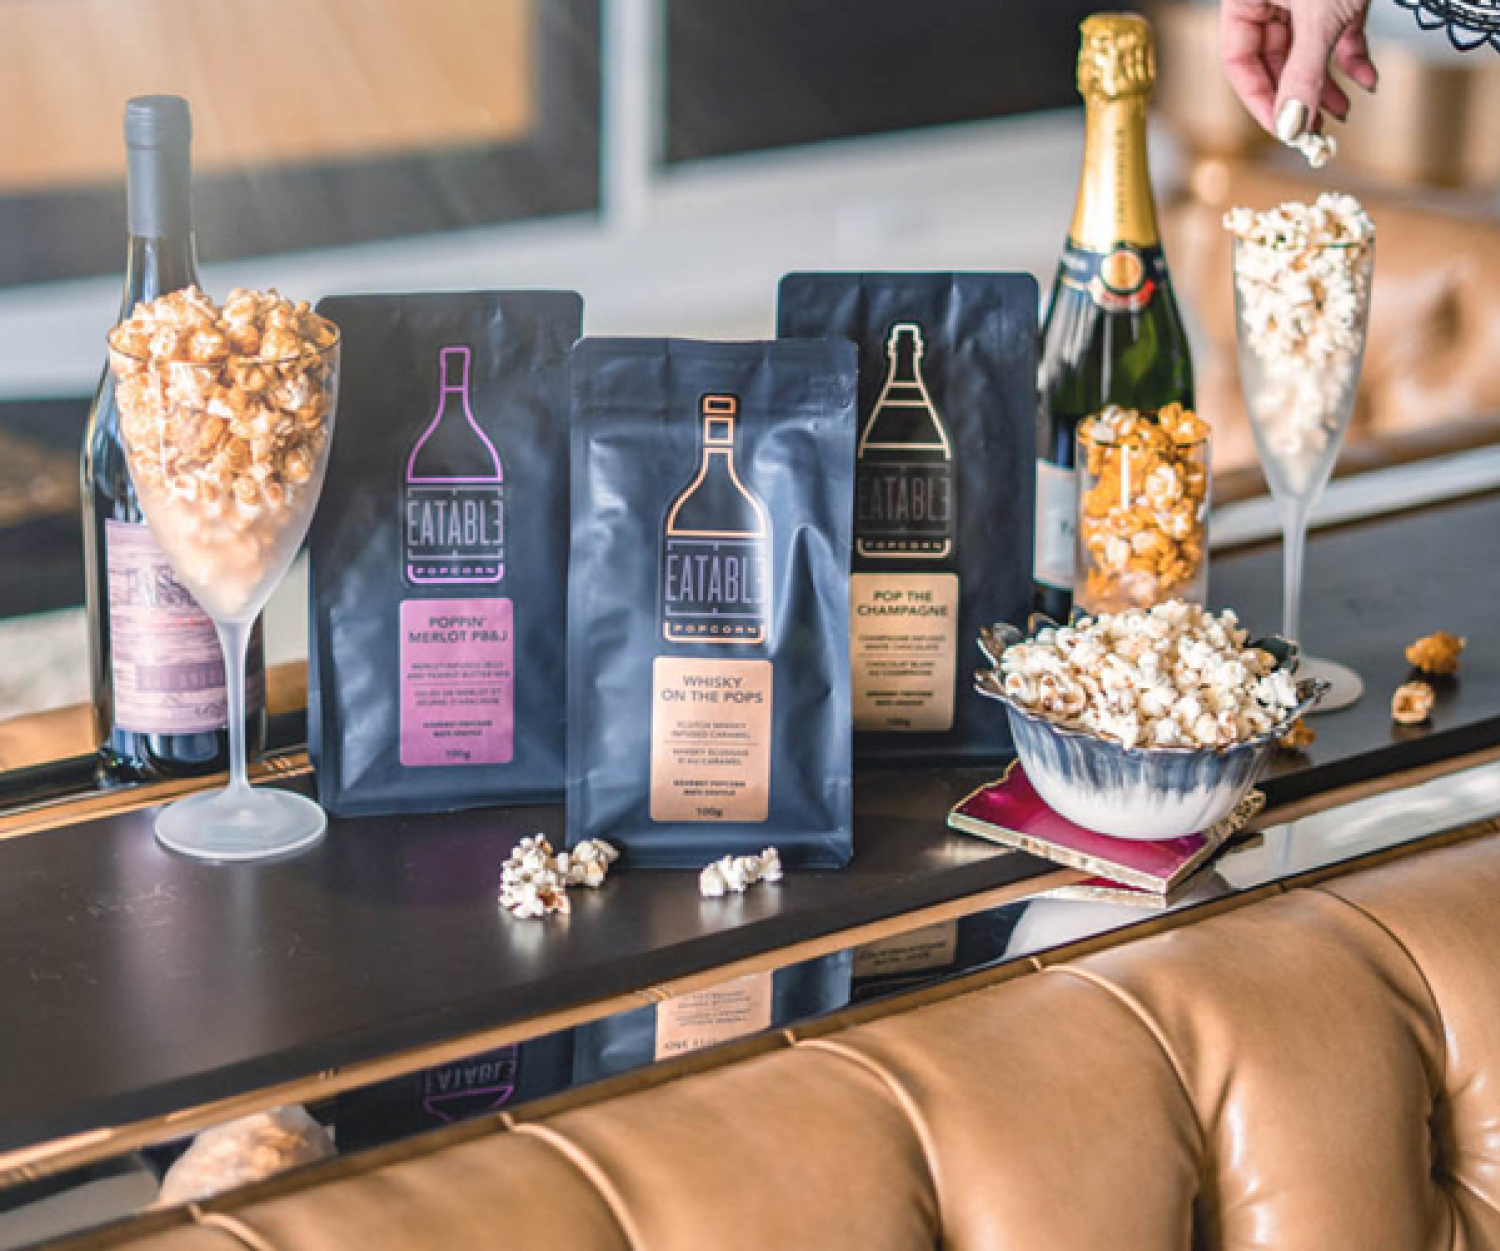 Eatable alcohol-infused popcorn